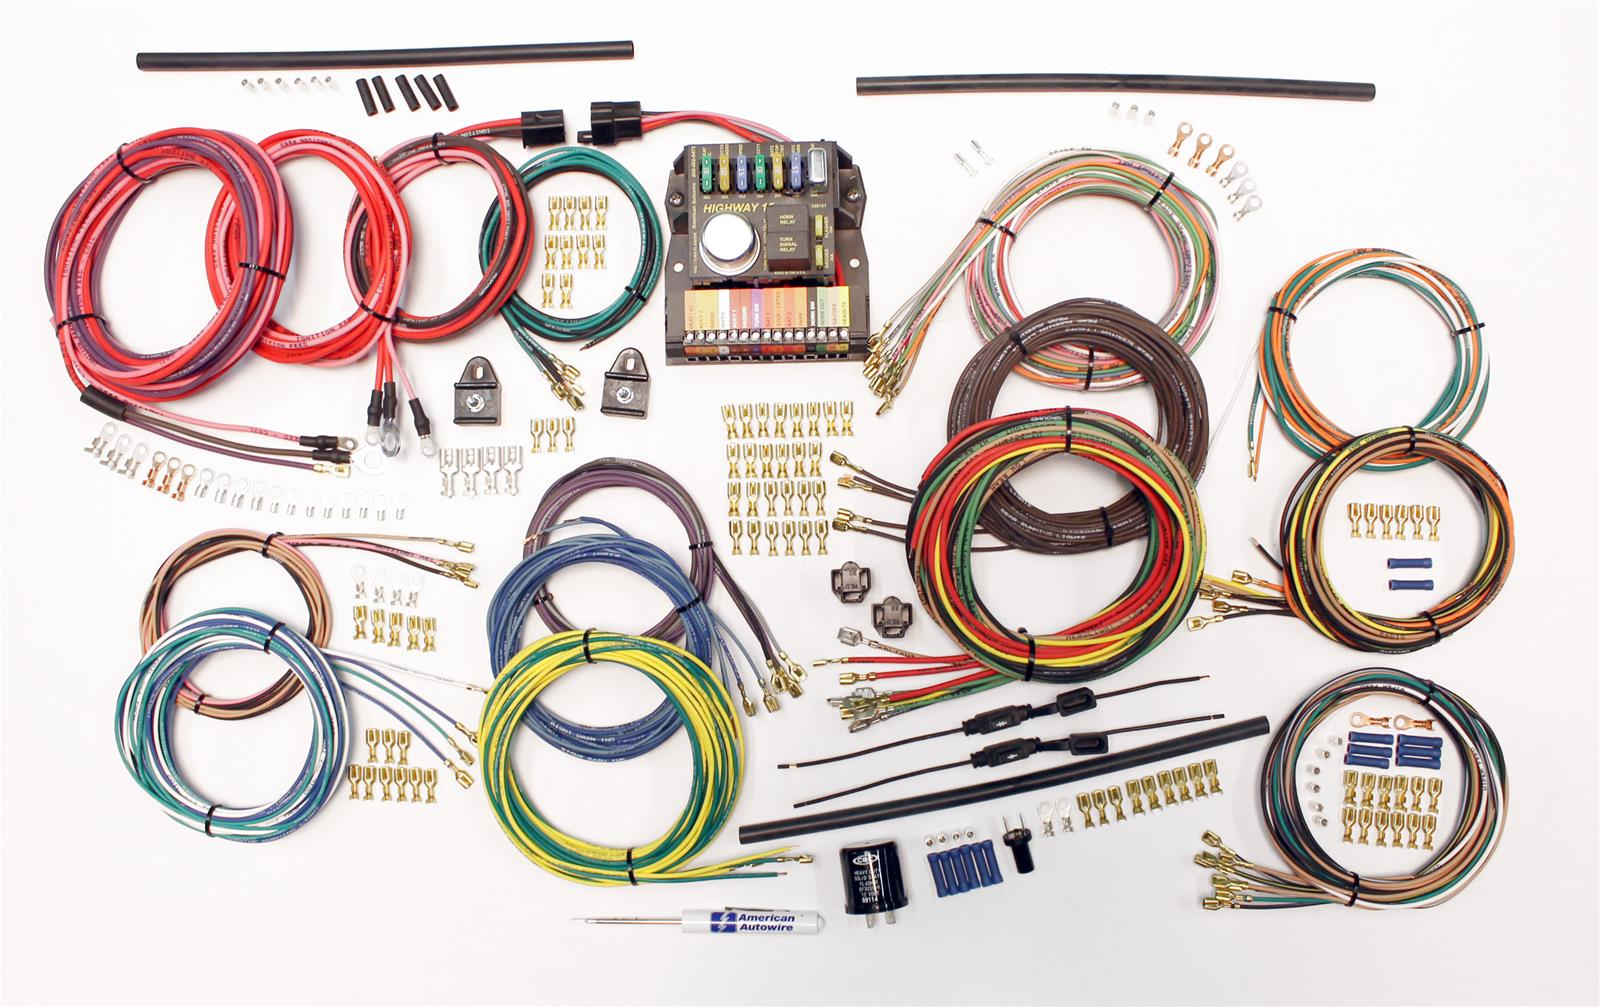 american autowire classic update series wiring harness kits 510419 rh  summitracing com Vintage VW Wiring Harness